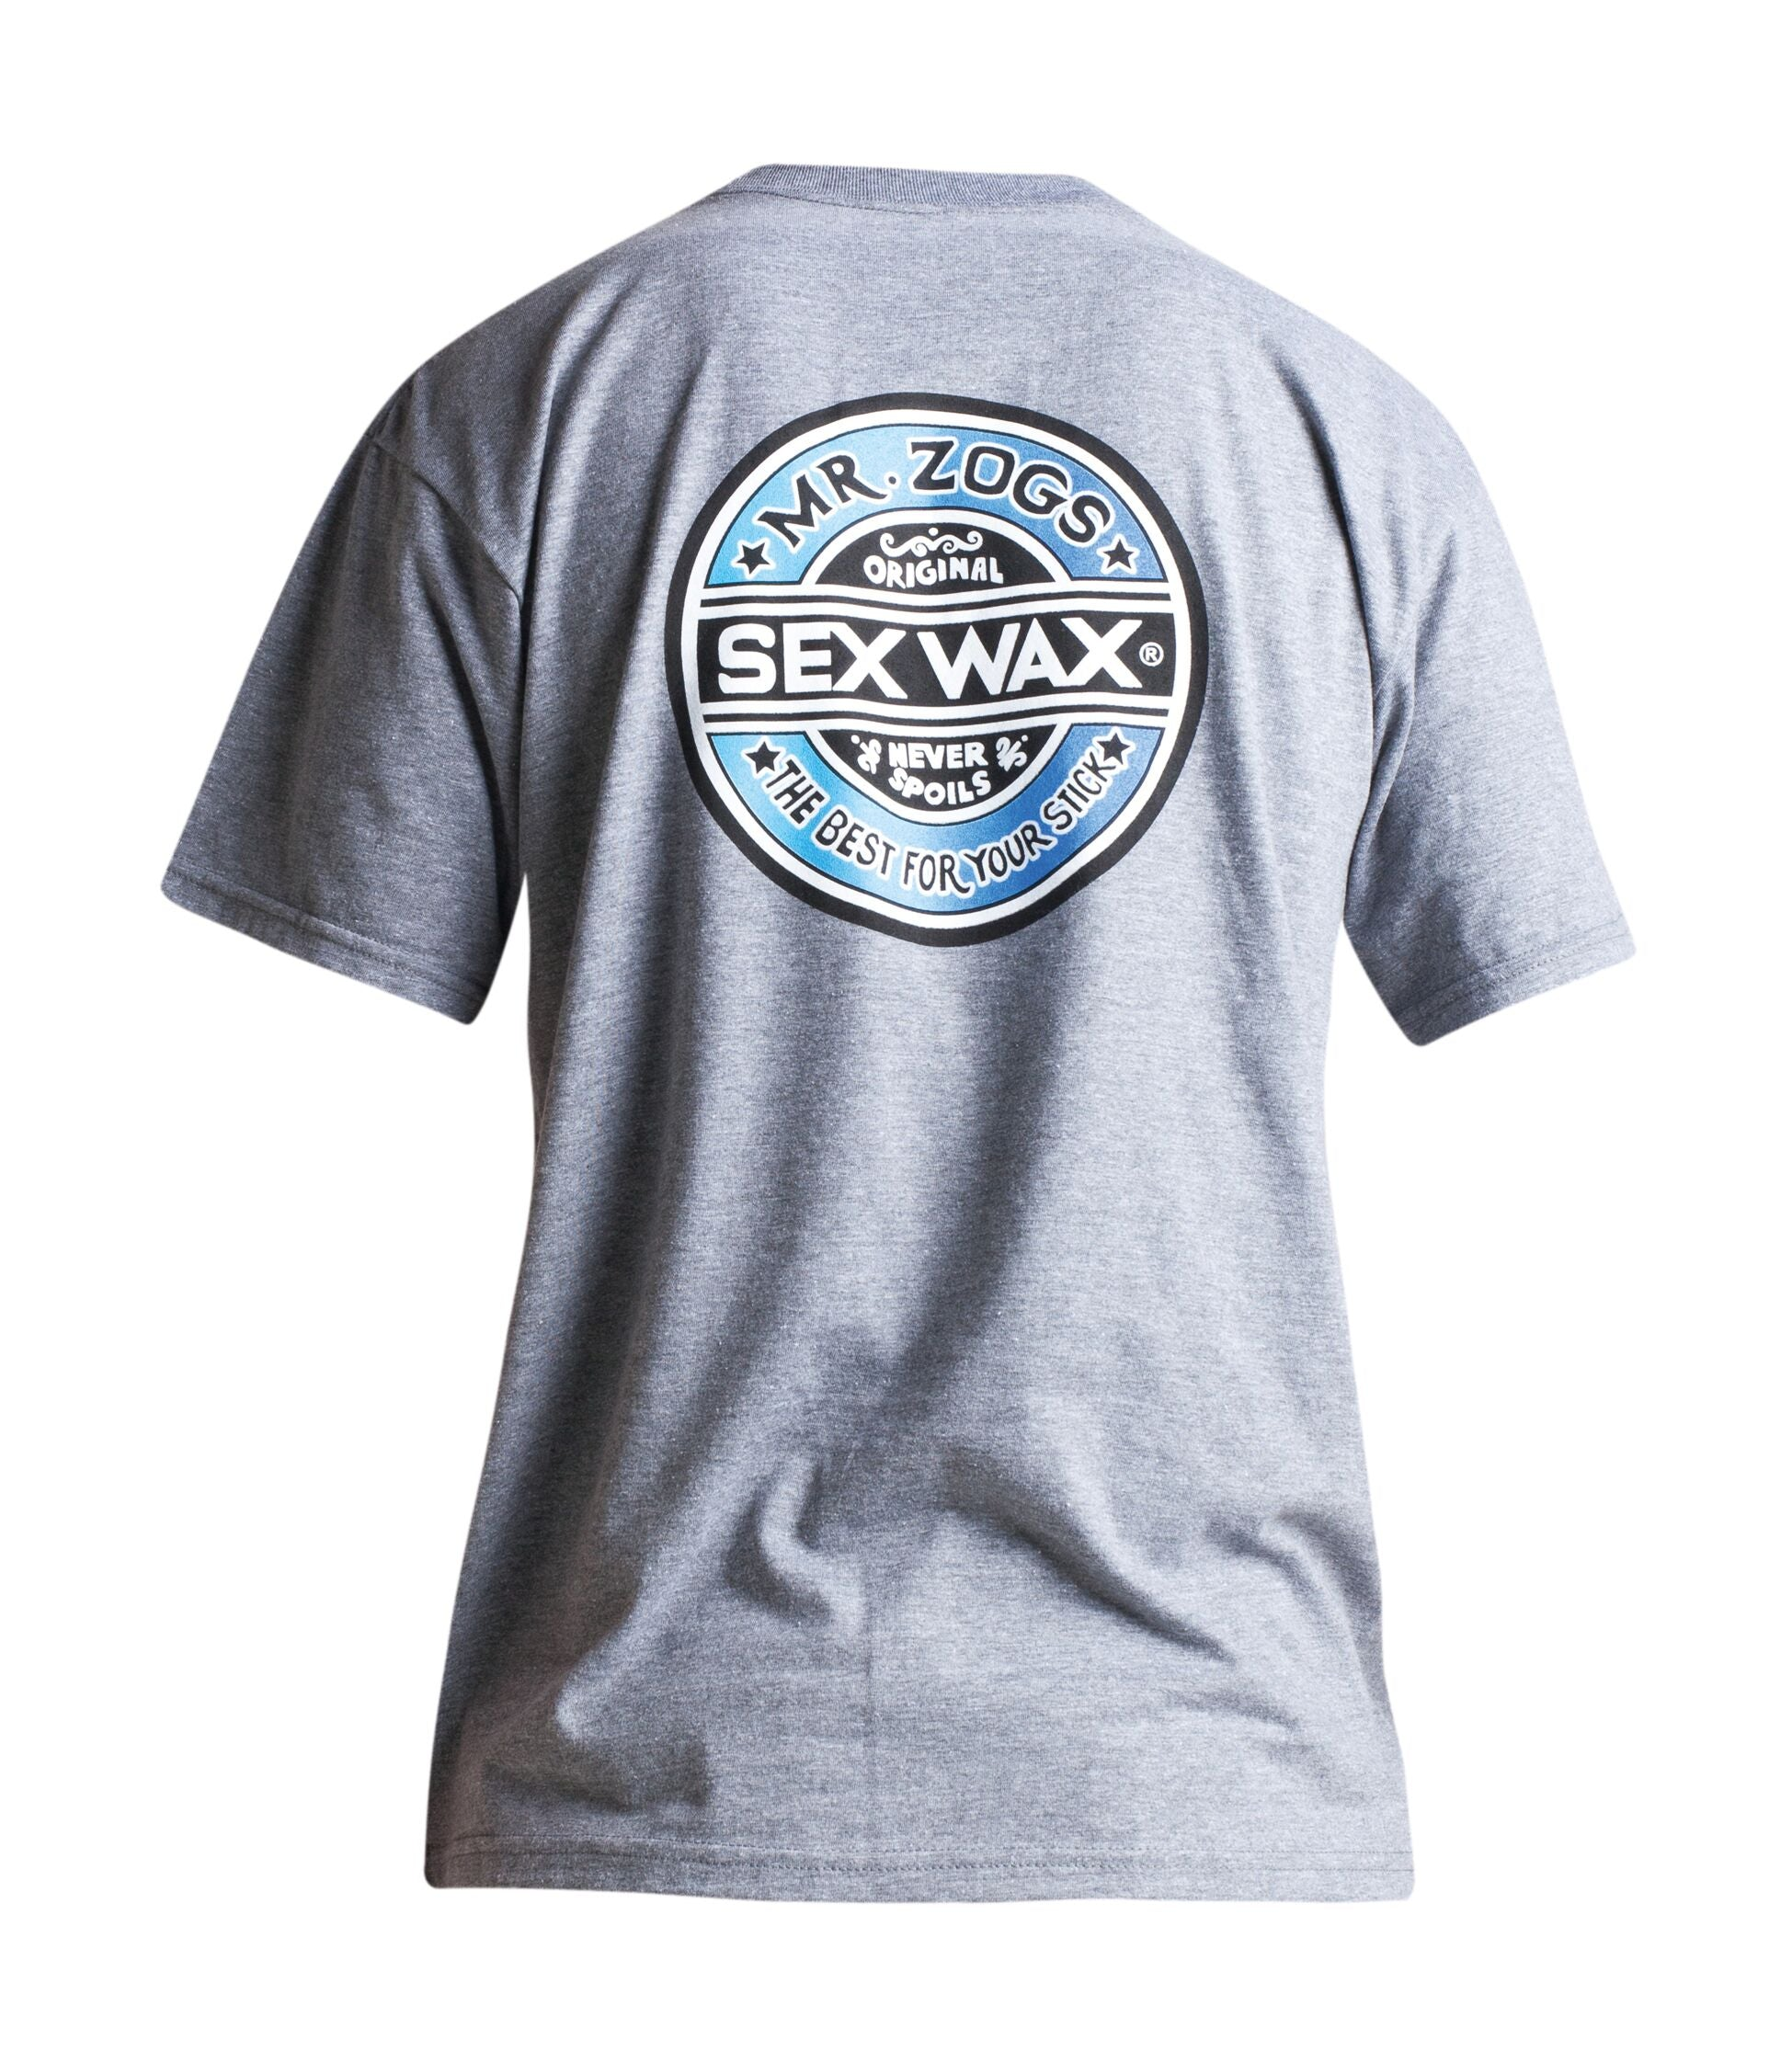 Mr Zogs Sex Wax T-Shirt - The Fade - Grey Marl